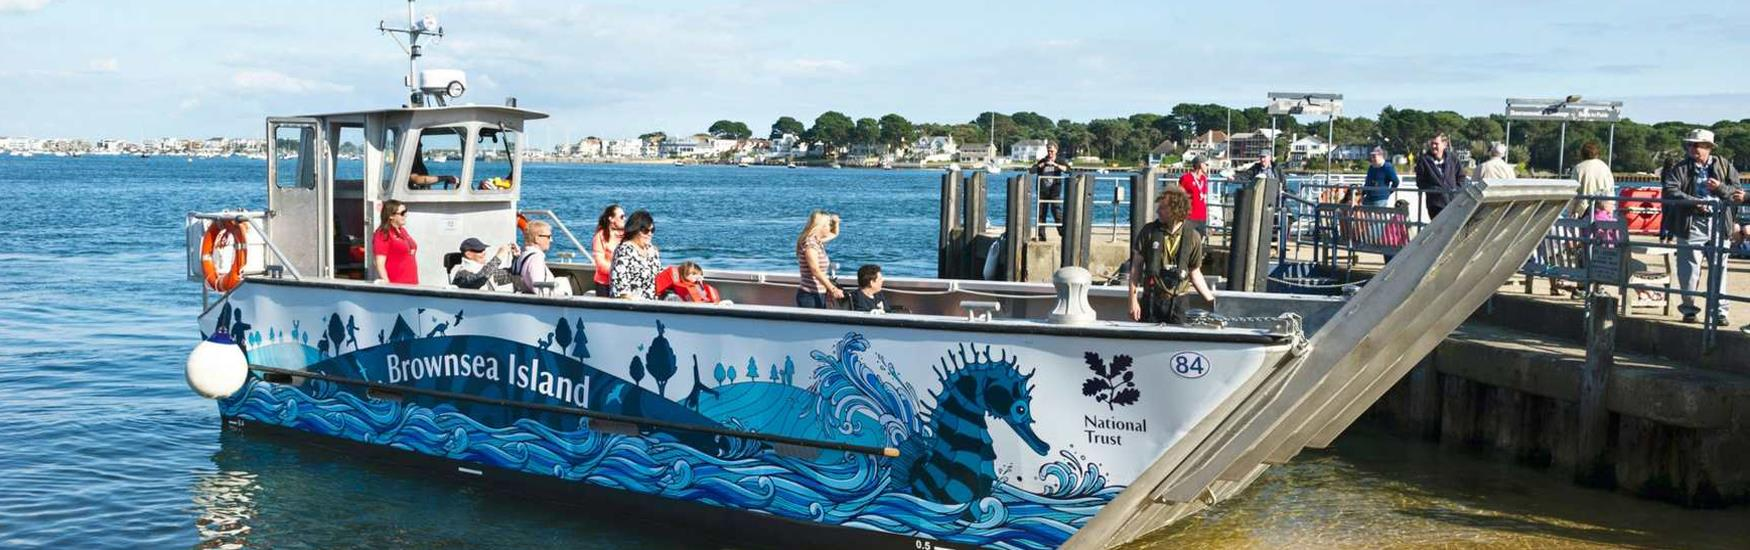 NT Brownsea Seahorse giving wheelchair access to the island